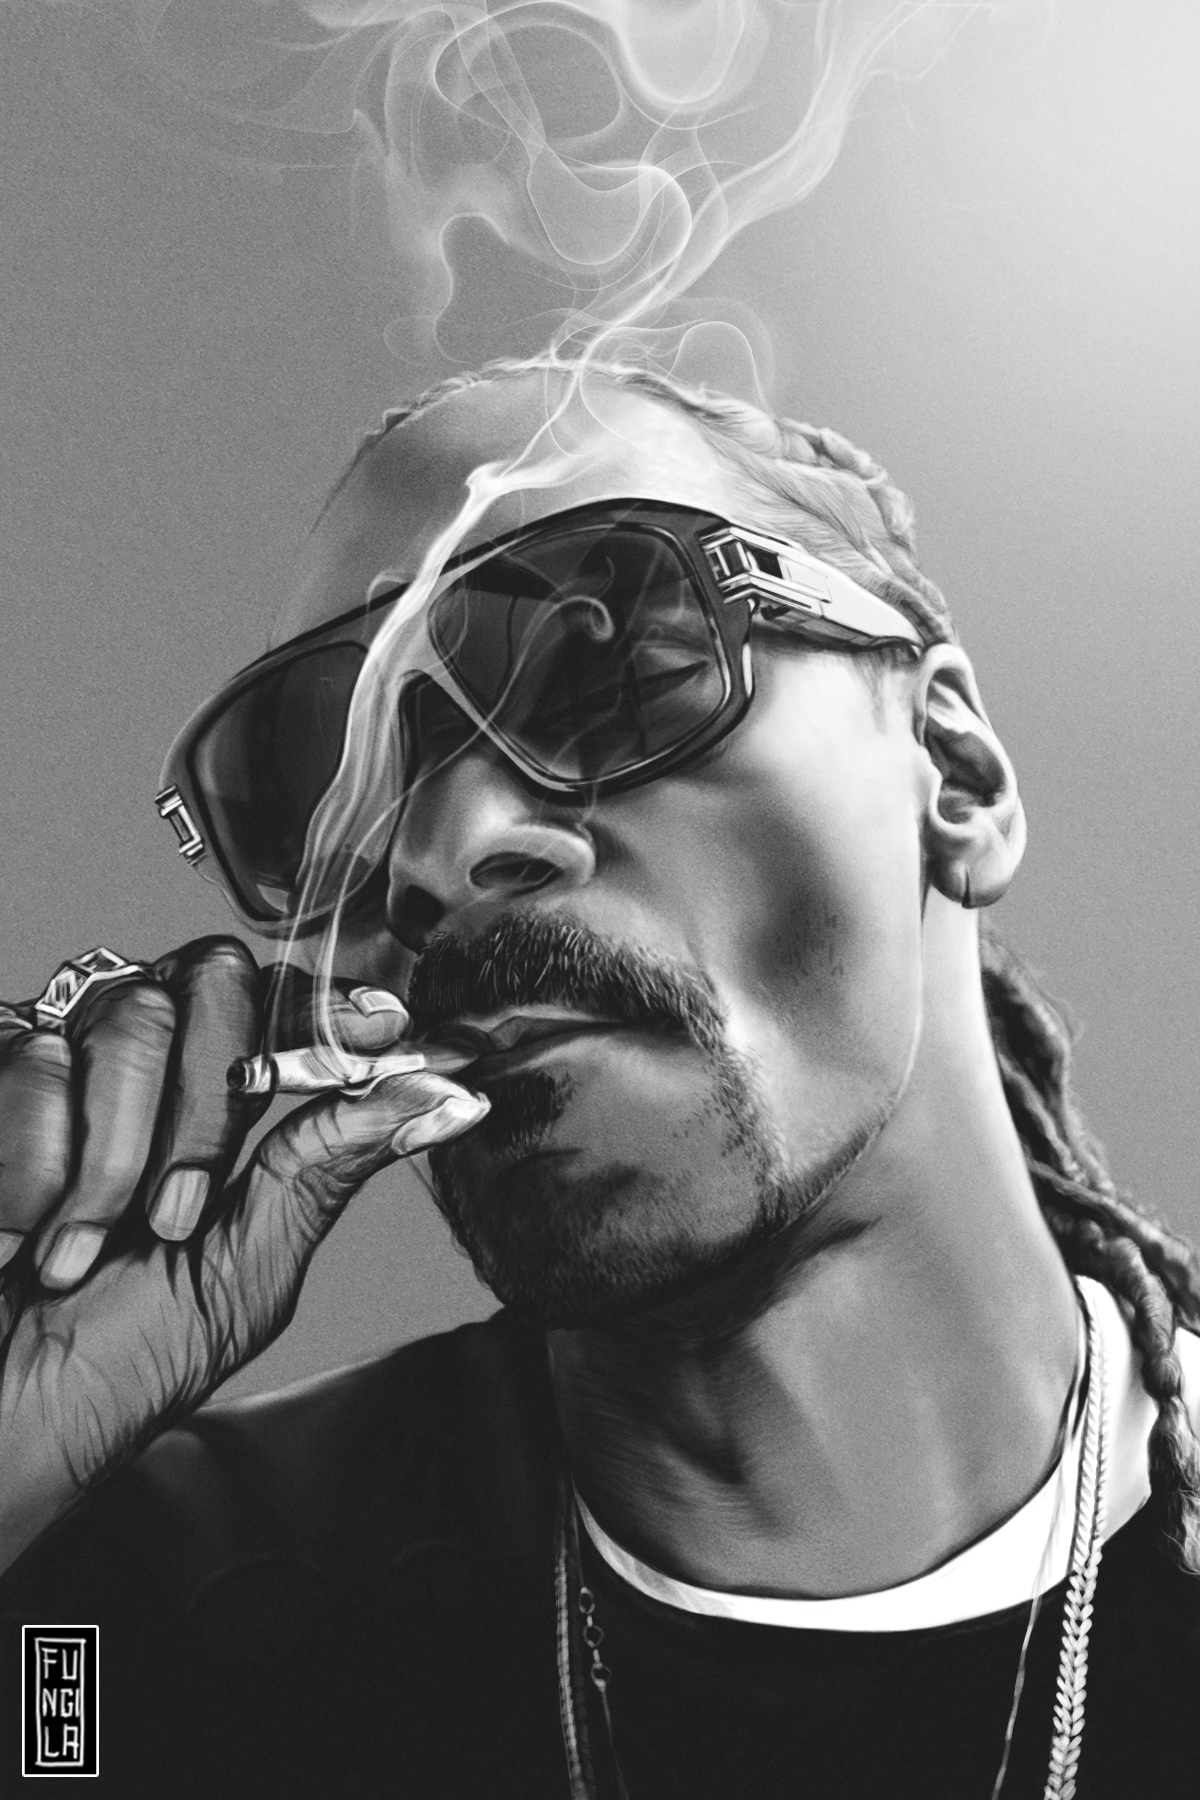 Snoop Dogg Dope Wallpapers Top Free Snoop Dogg Dope Backgrounds